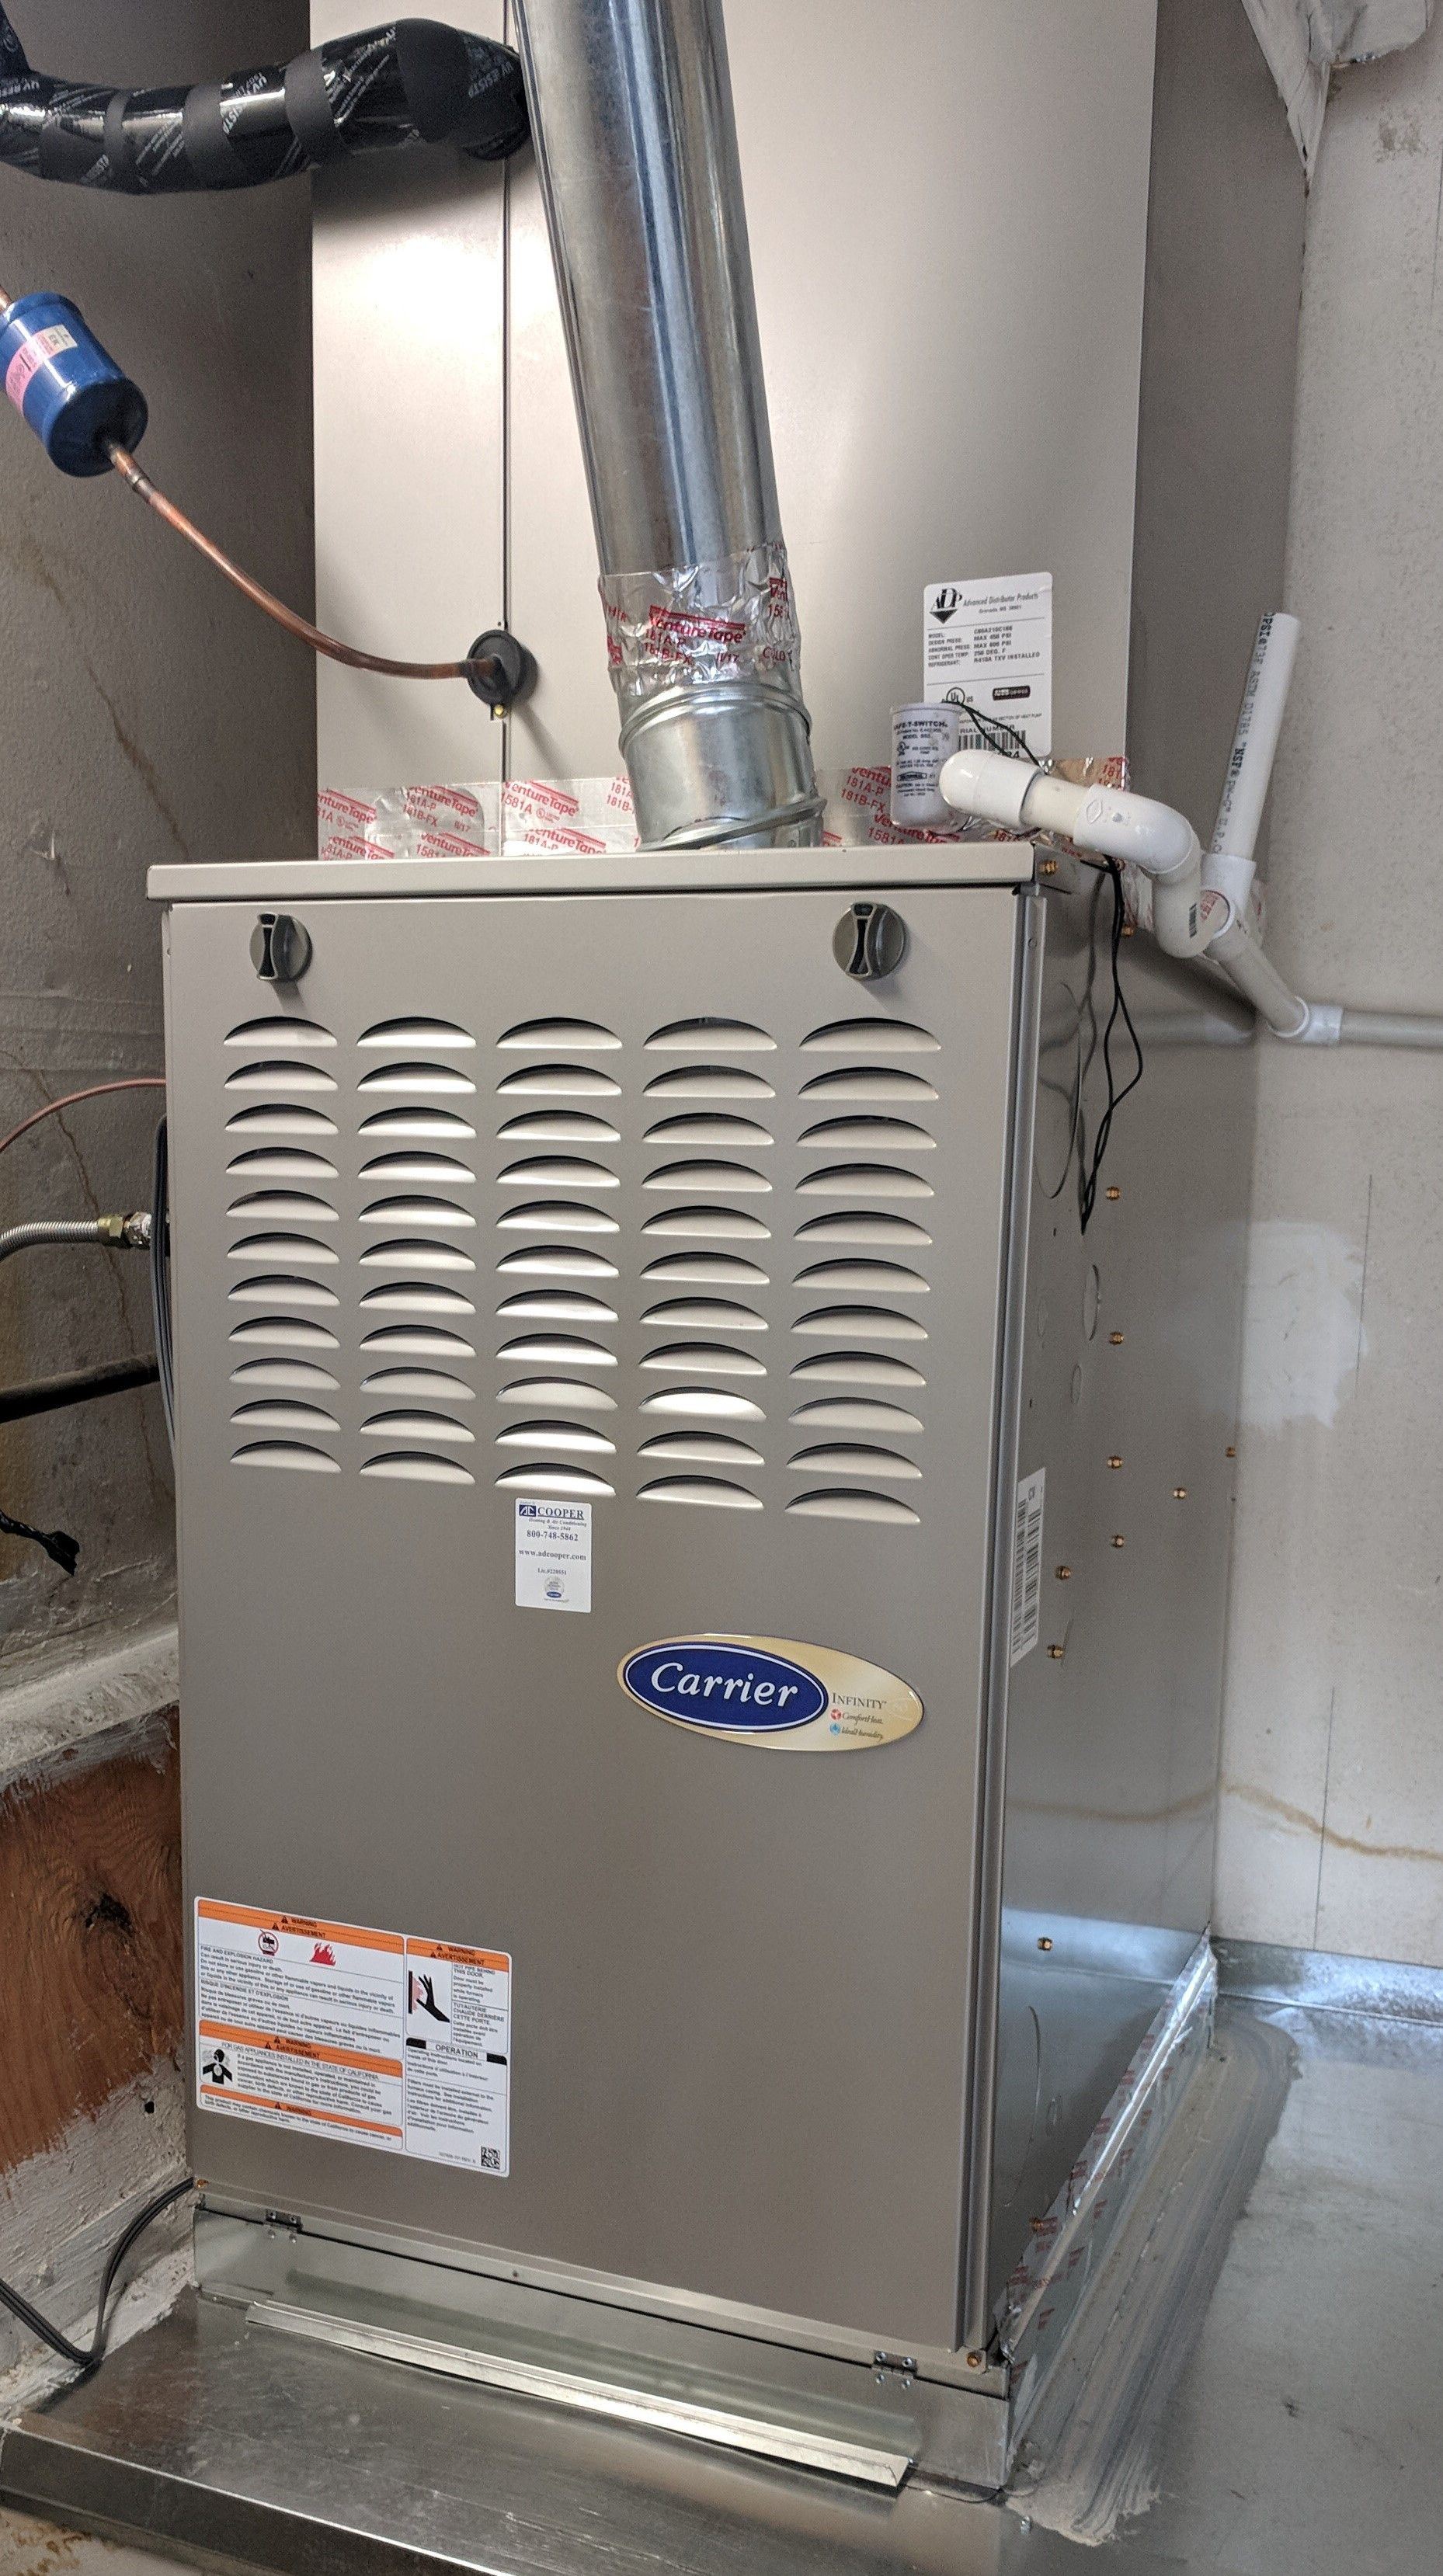 We installed this furnace along with the condenser for one